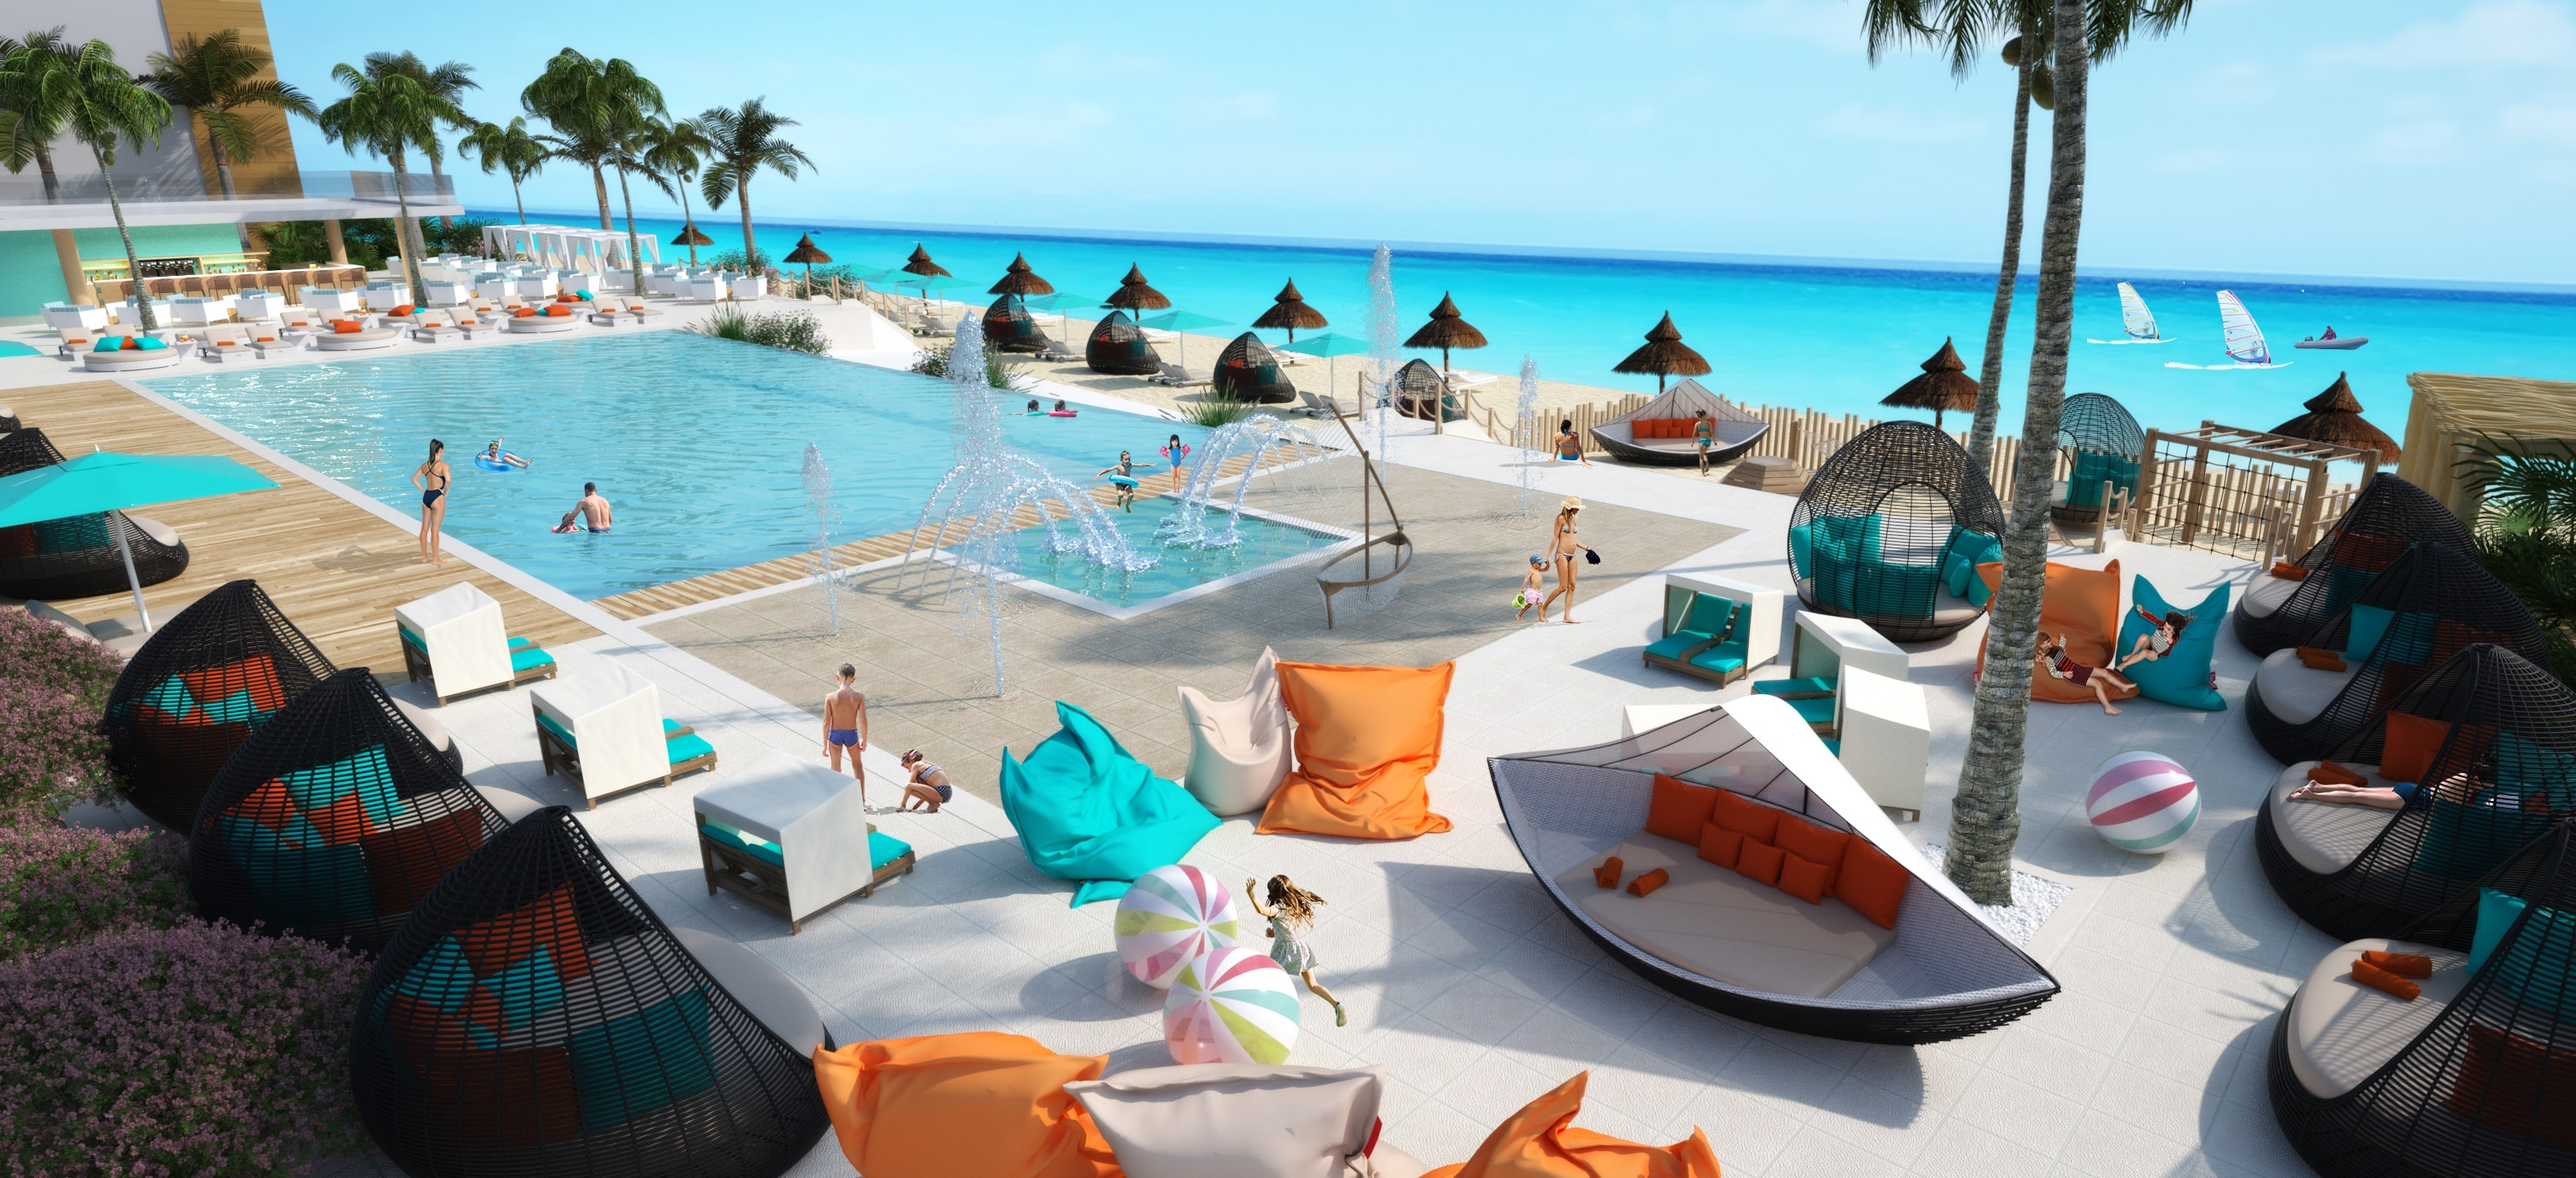 Club Med Cancun To Add New Family Focused Expansion